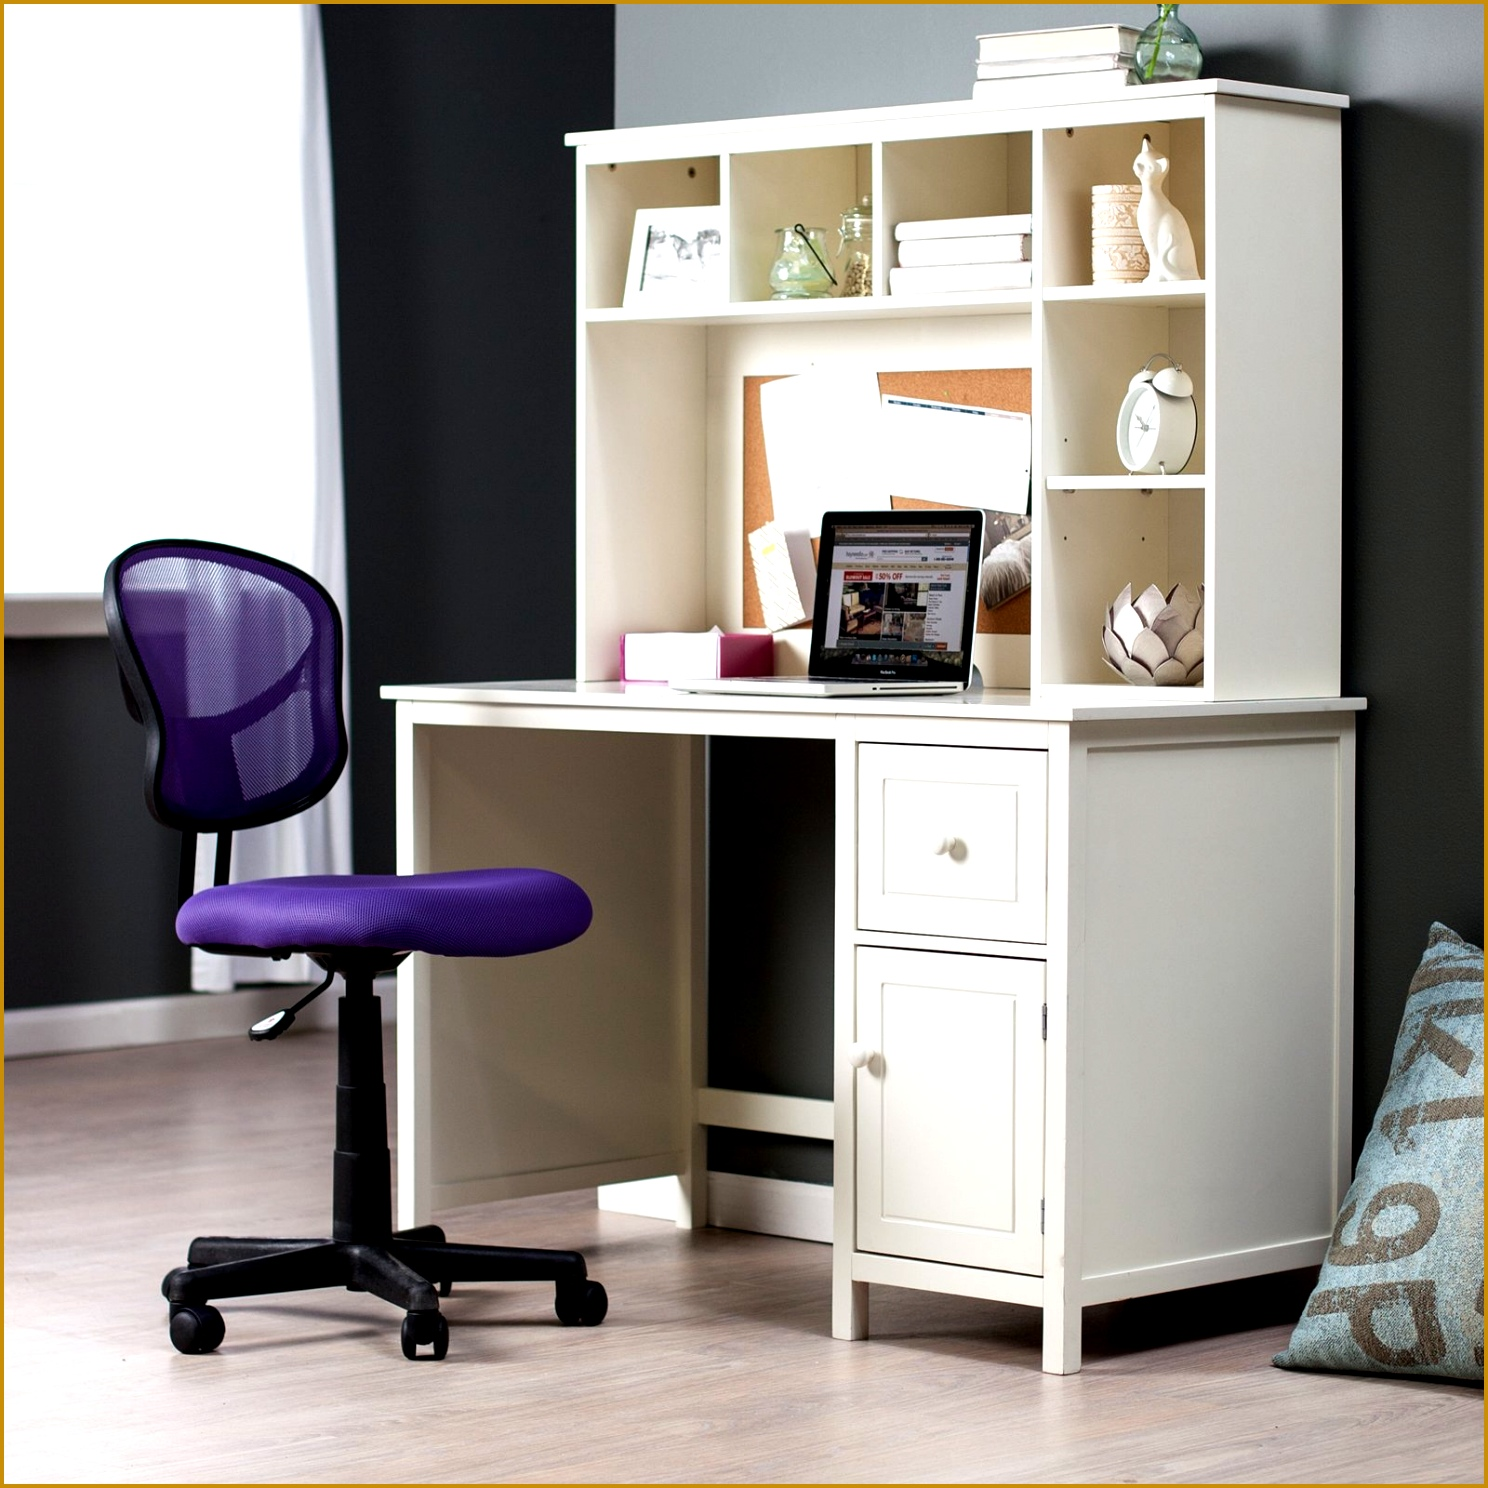 Furniture Fabulous White Home fice Furniture Design Using White Desk With Cabinet And Bookcase Fixture 14881488